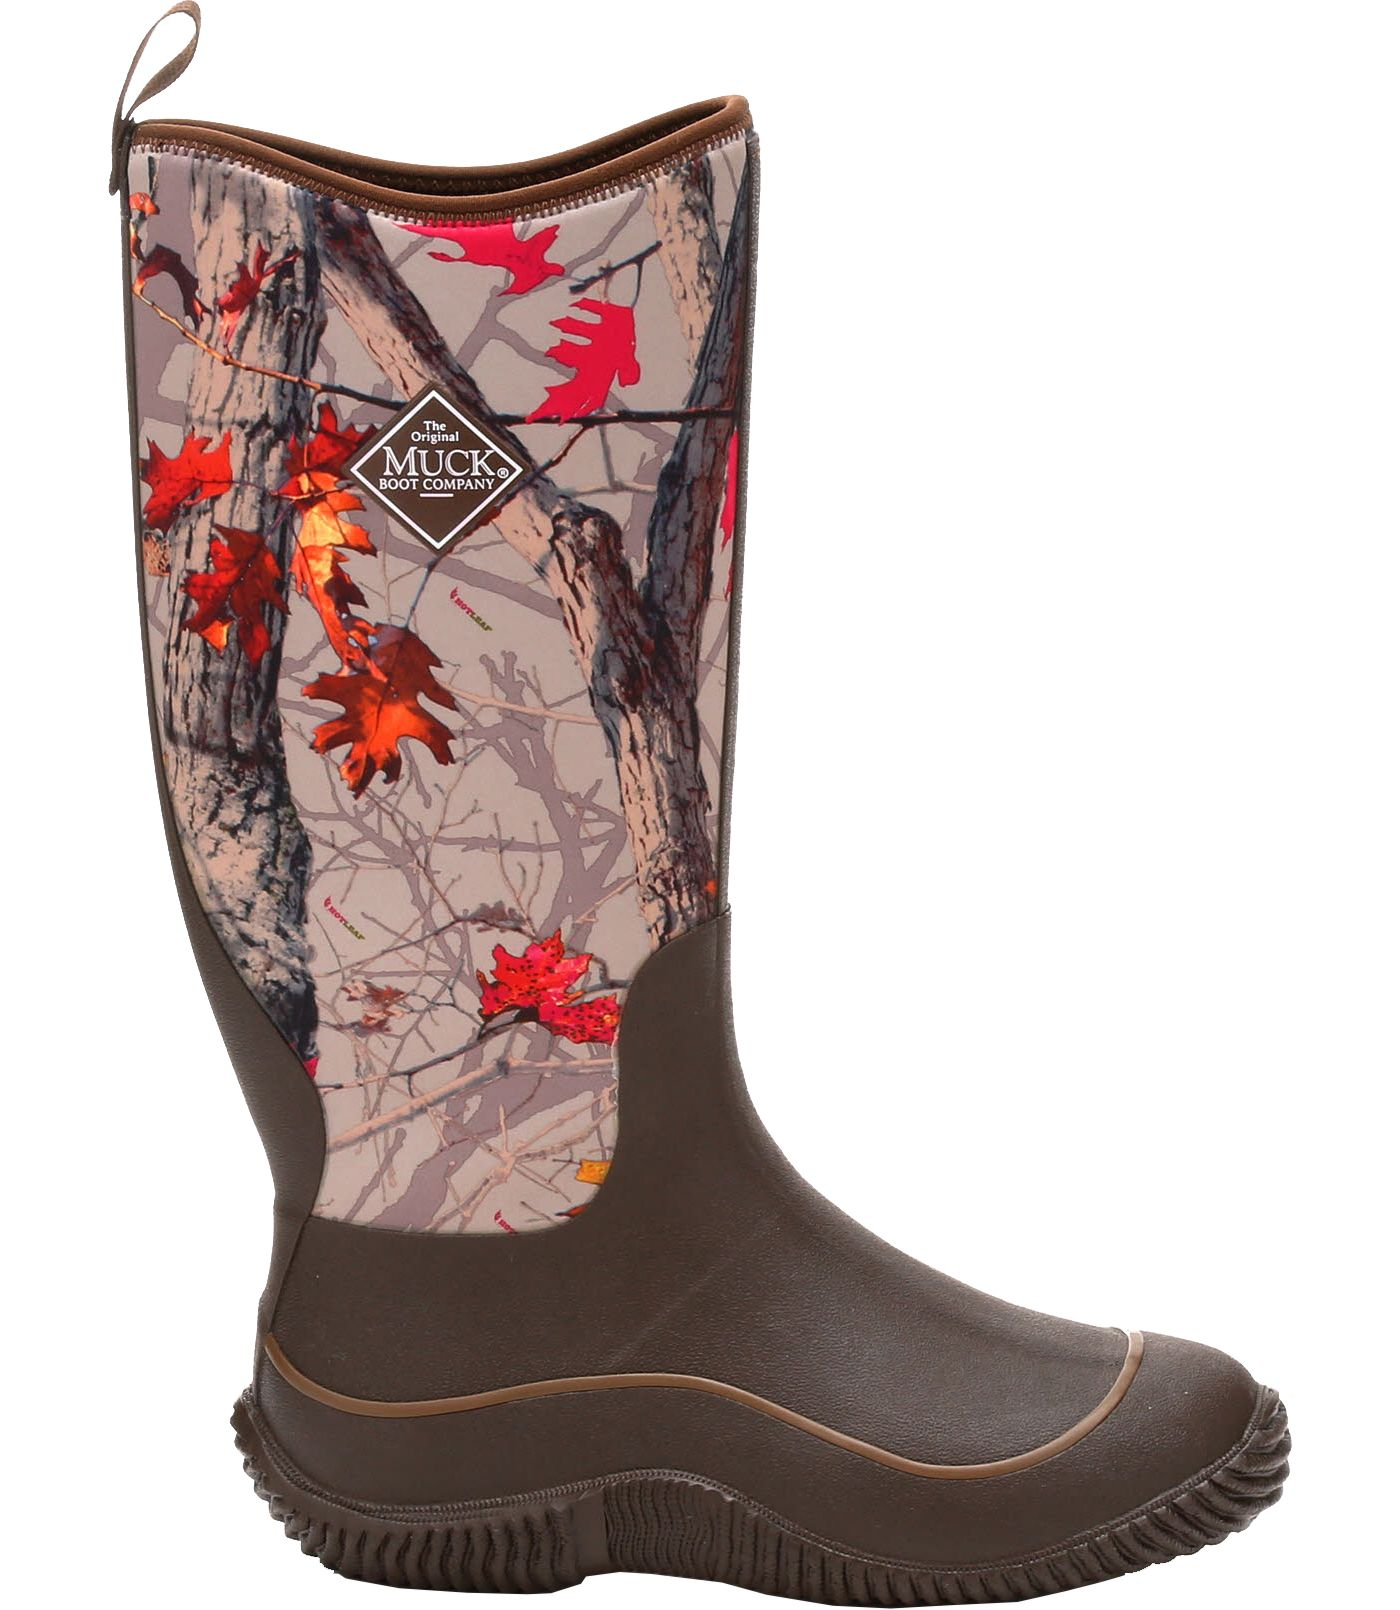 Muck Boots Women's Hale Rubber Hunting Boots